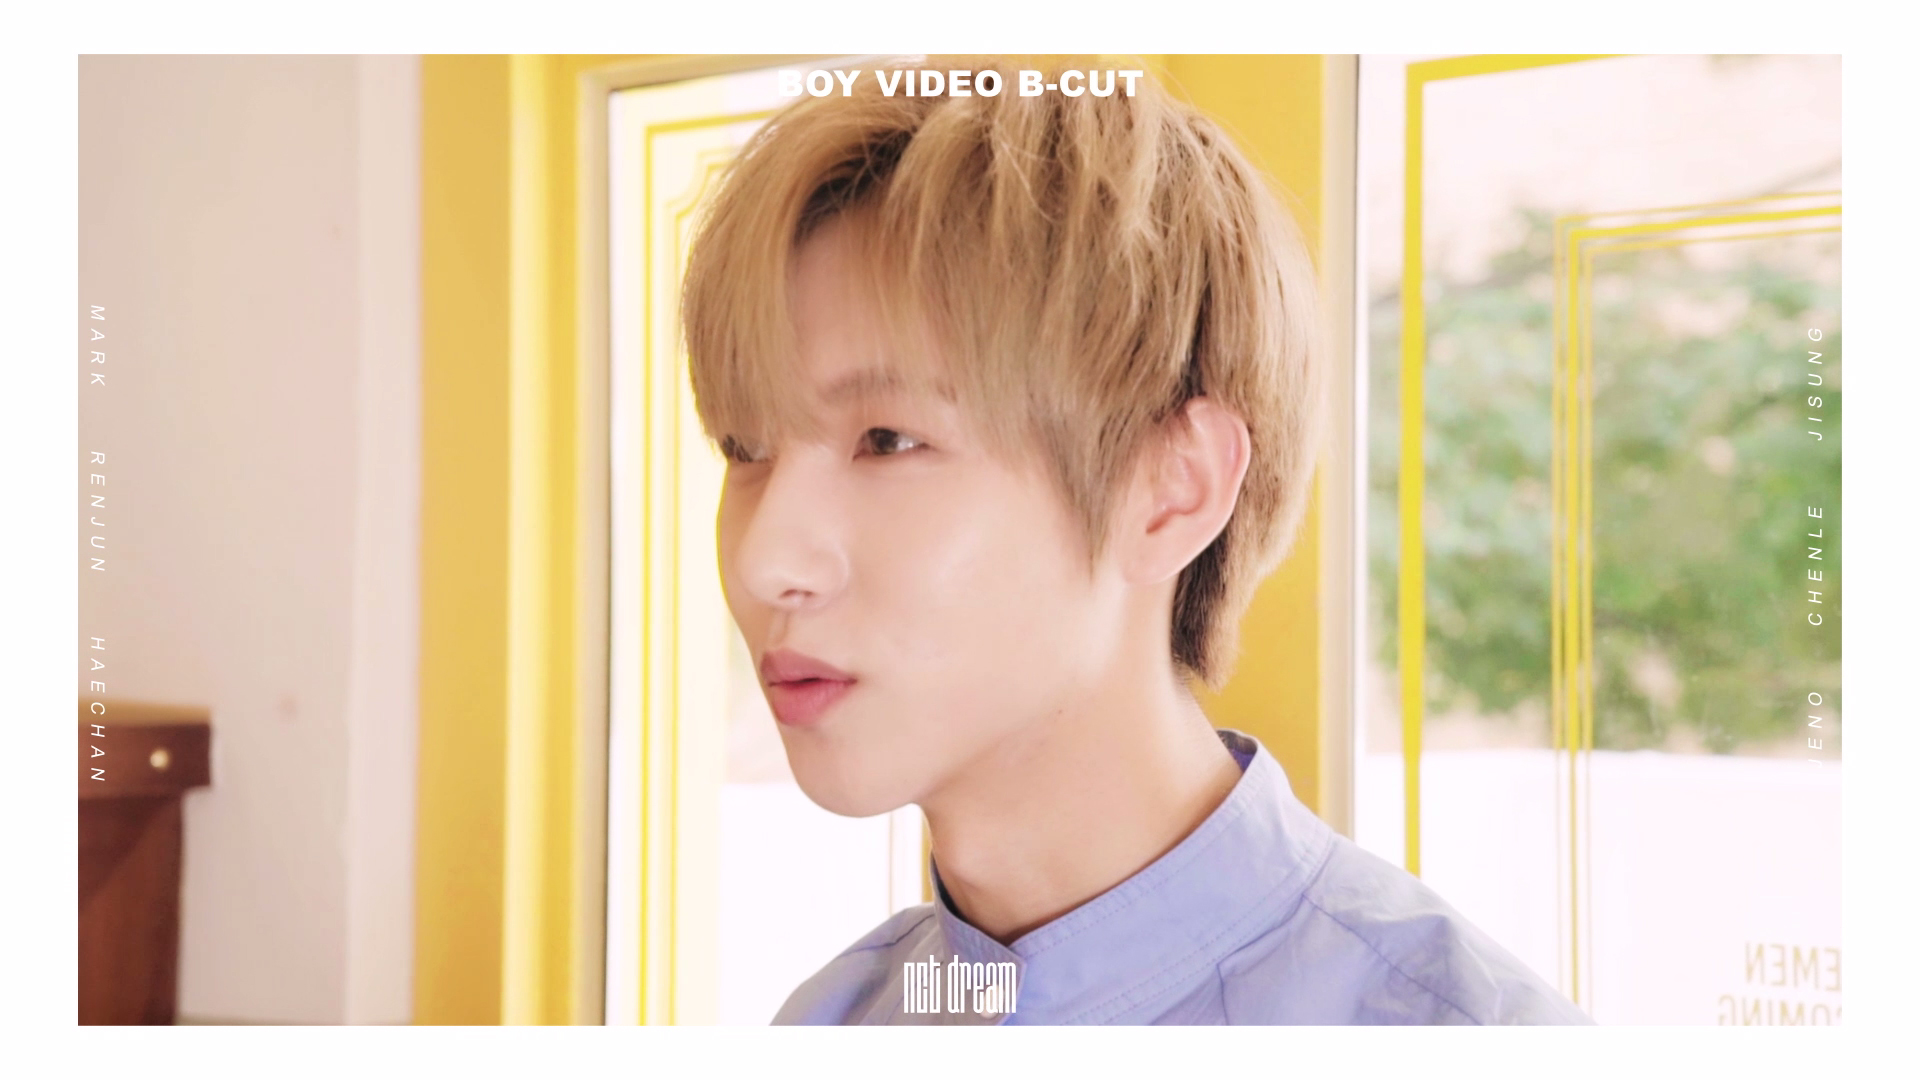 NCT DREAM BOY VIDEO B-CUT #5